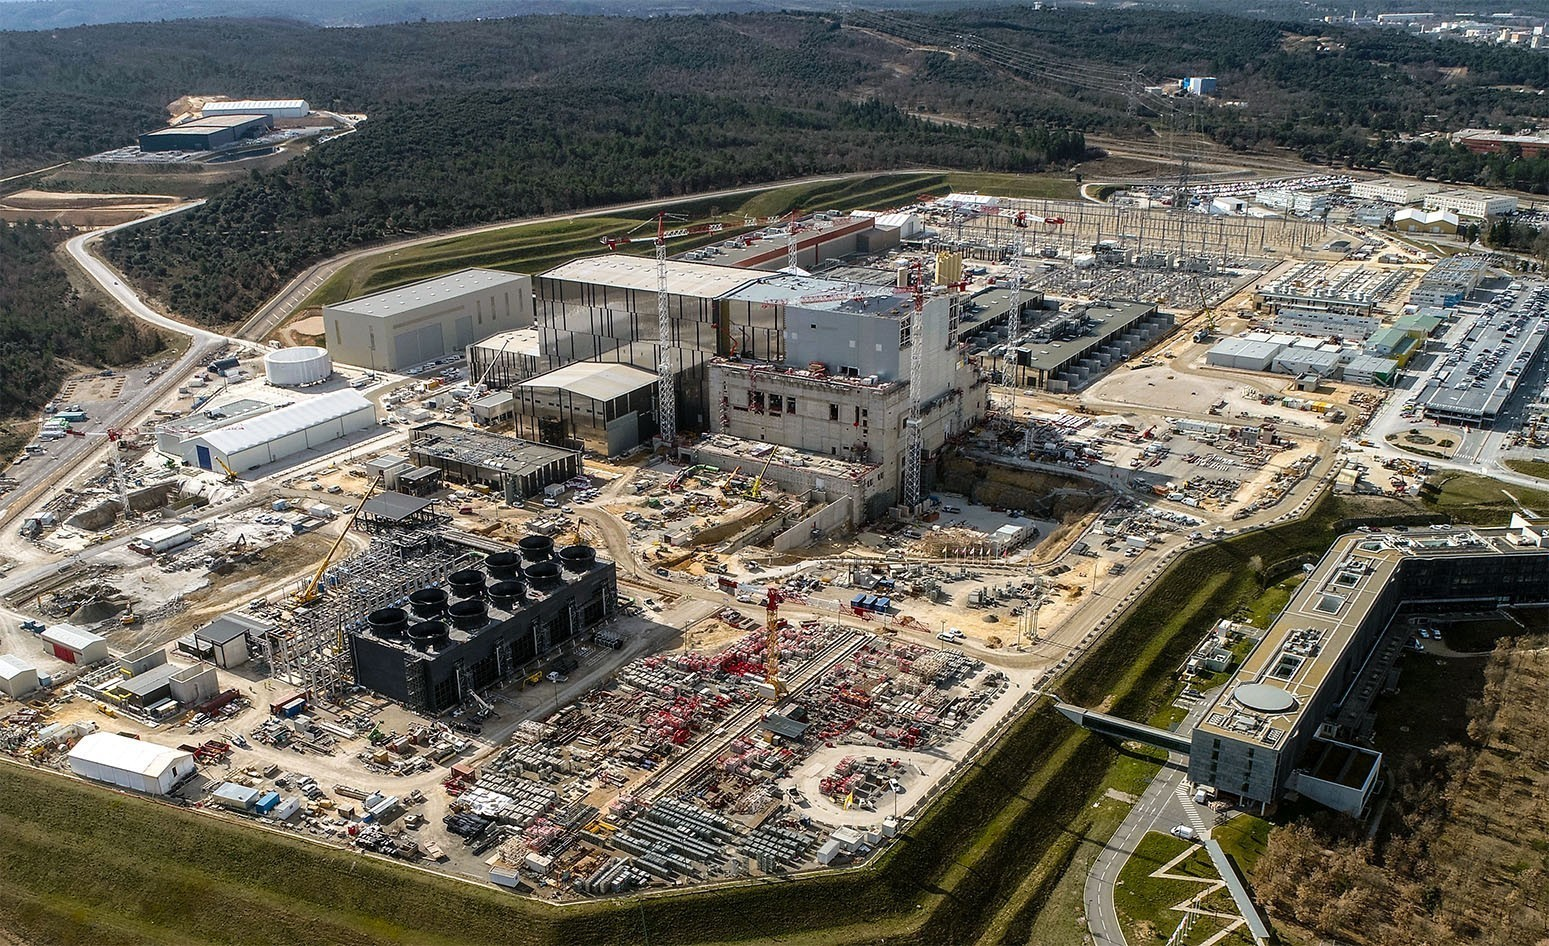 Image credit: ITER construction site and